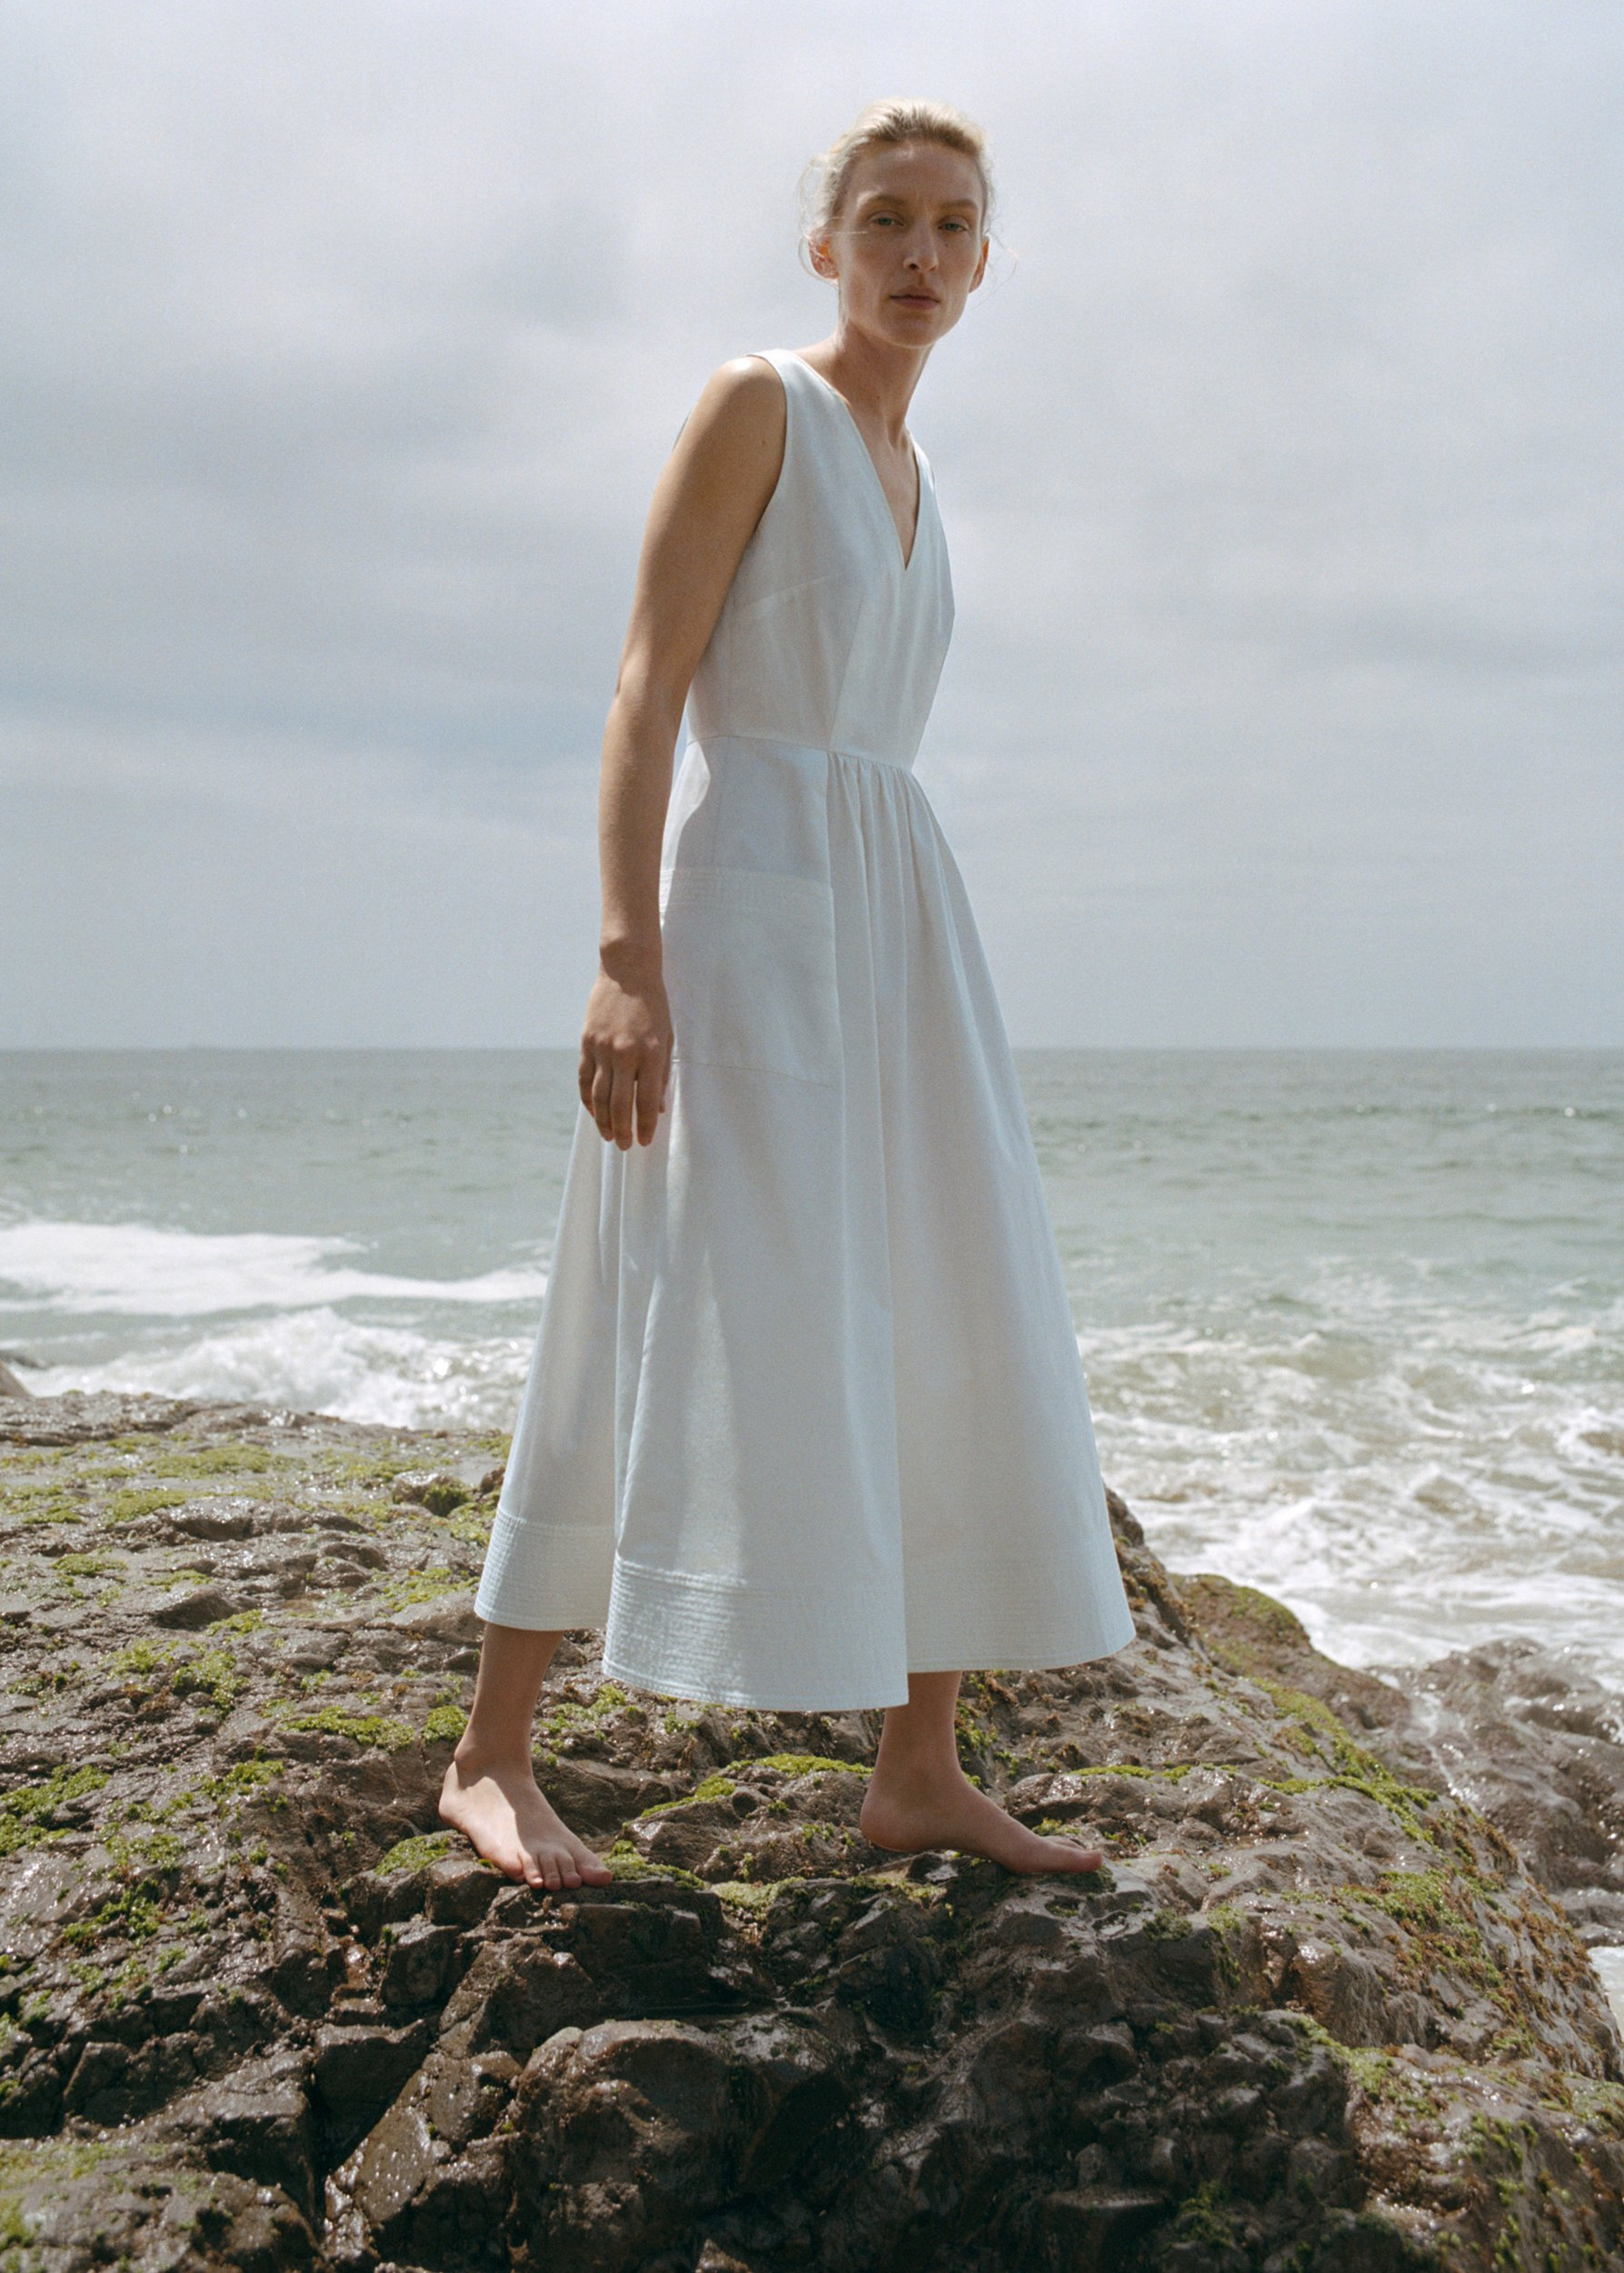 Sleeveless Trapunto Hem Dress - White - by Zoe Gherter for Co Collections